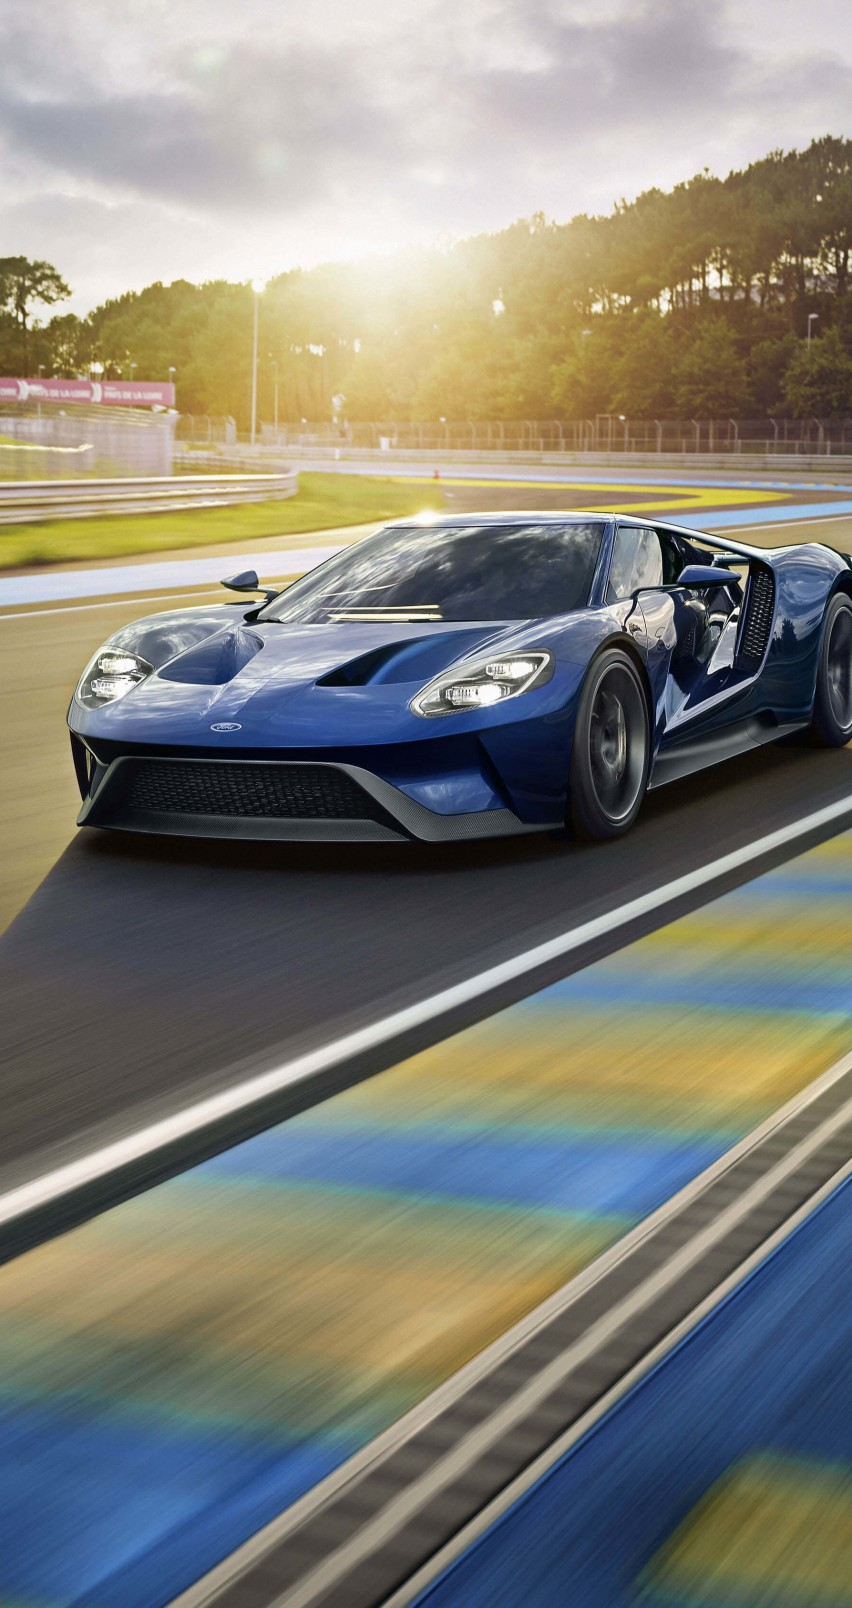 Ford GT Supercar Wallpaper for Apple iPhone 6 / 6s